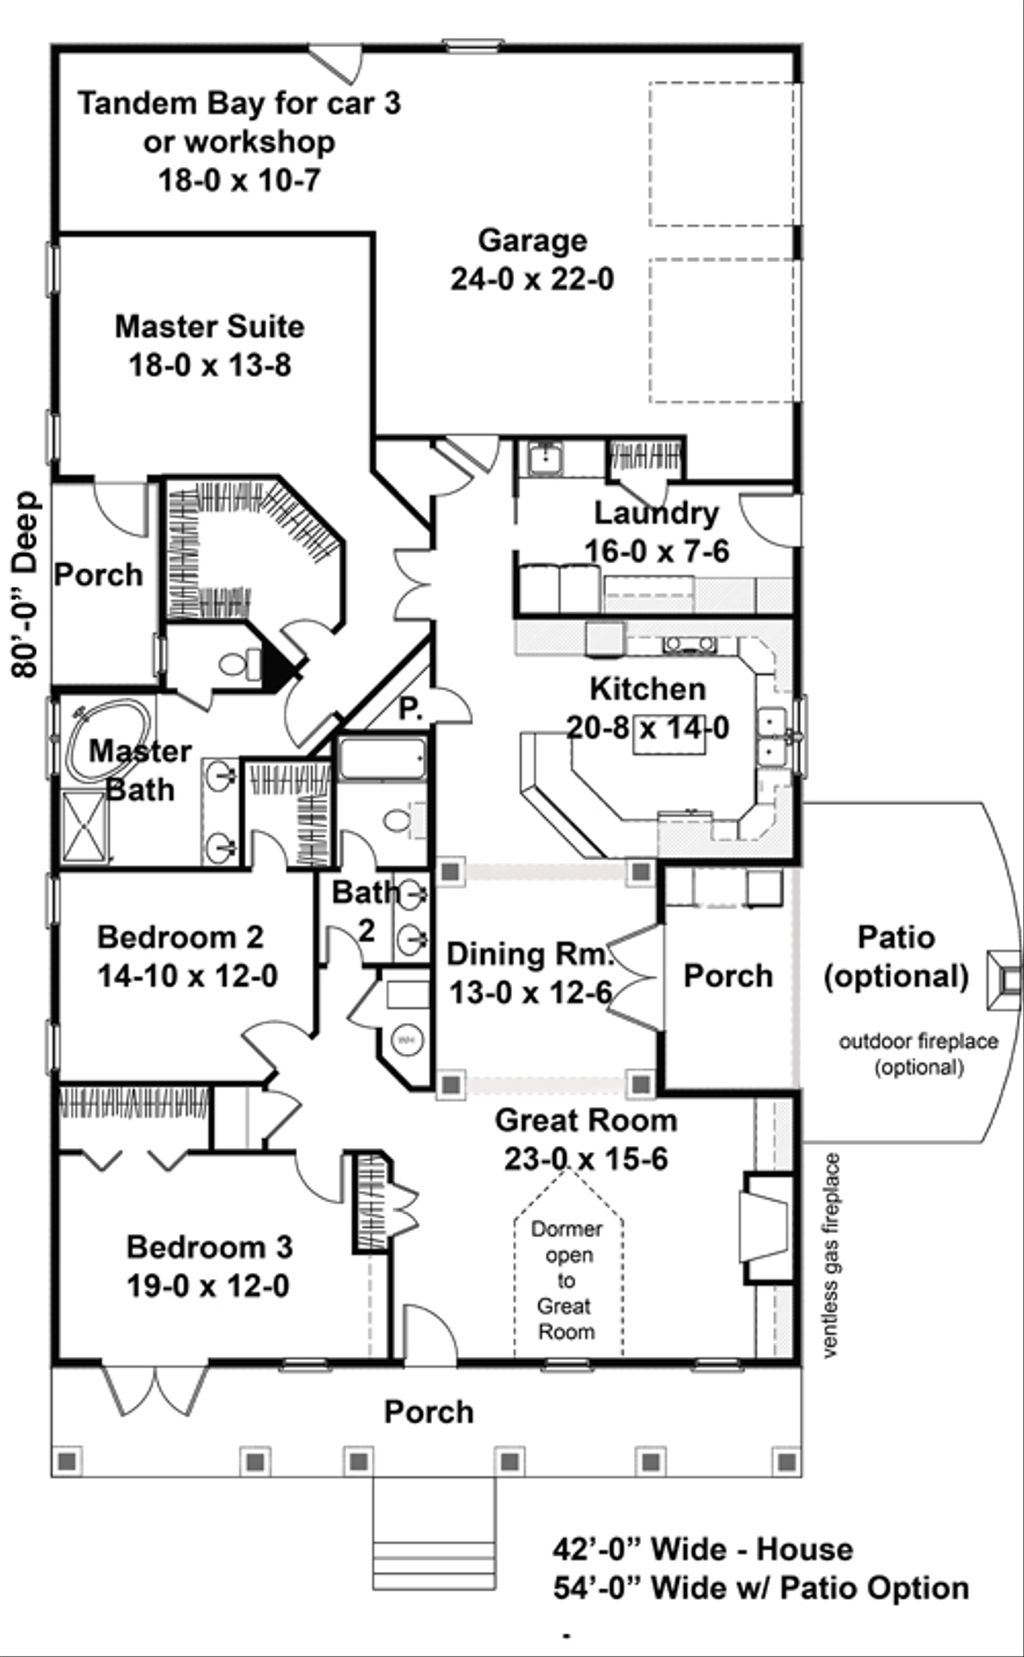 Traditional Style House Plan - 3 Beds 2 Baths 2208 Sq/Ft ... on 20 x 40 house plans, 18 x 36 house plans, 28 x 32 house plans, 30 x 44 house plans, 1 bedroom 24x24 house plans, 16 x 28 house plans, 14 x 28 house plans, 25 x 40 house plans, 20 x 28 house plans, 16 x 32 house plans, 36 x 44 house plans, 20 x 36 house plans, bennington small saltbox house plans, 28 x 50 house plans, 24 by 30 house plans, 28x48 ranch house plans, 26 x 50 house plans, 36 x 40 house plans, 20 x 32 house plans, 28 x 40 house plans,